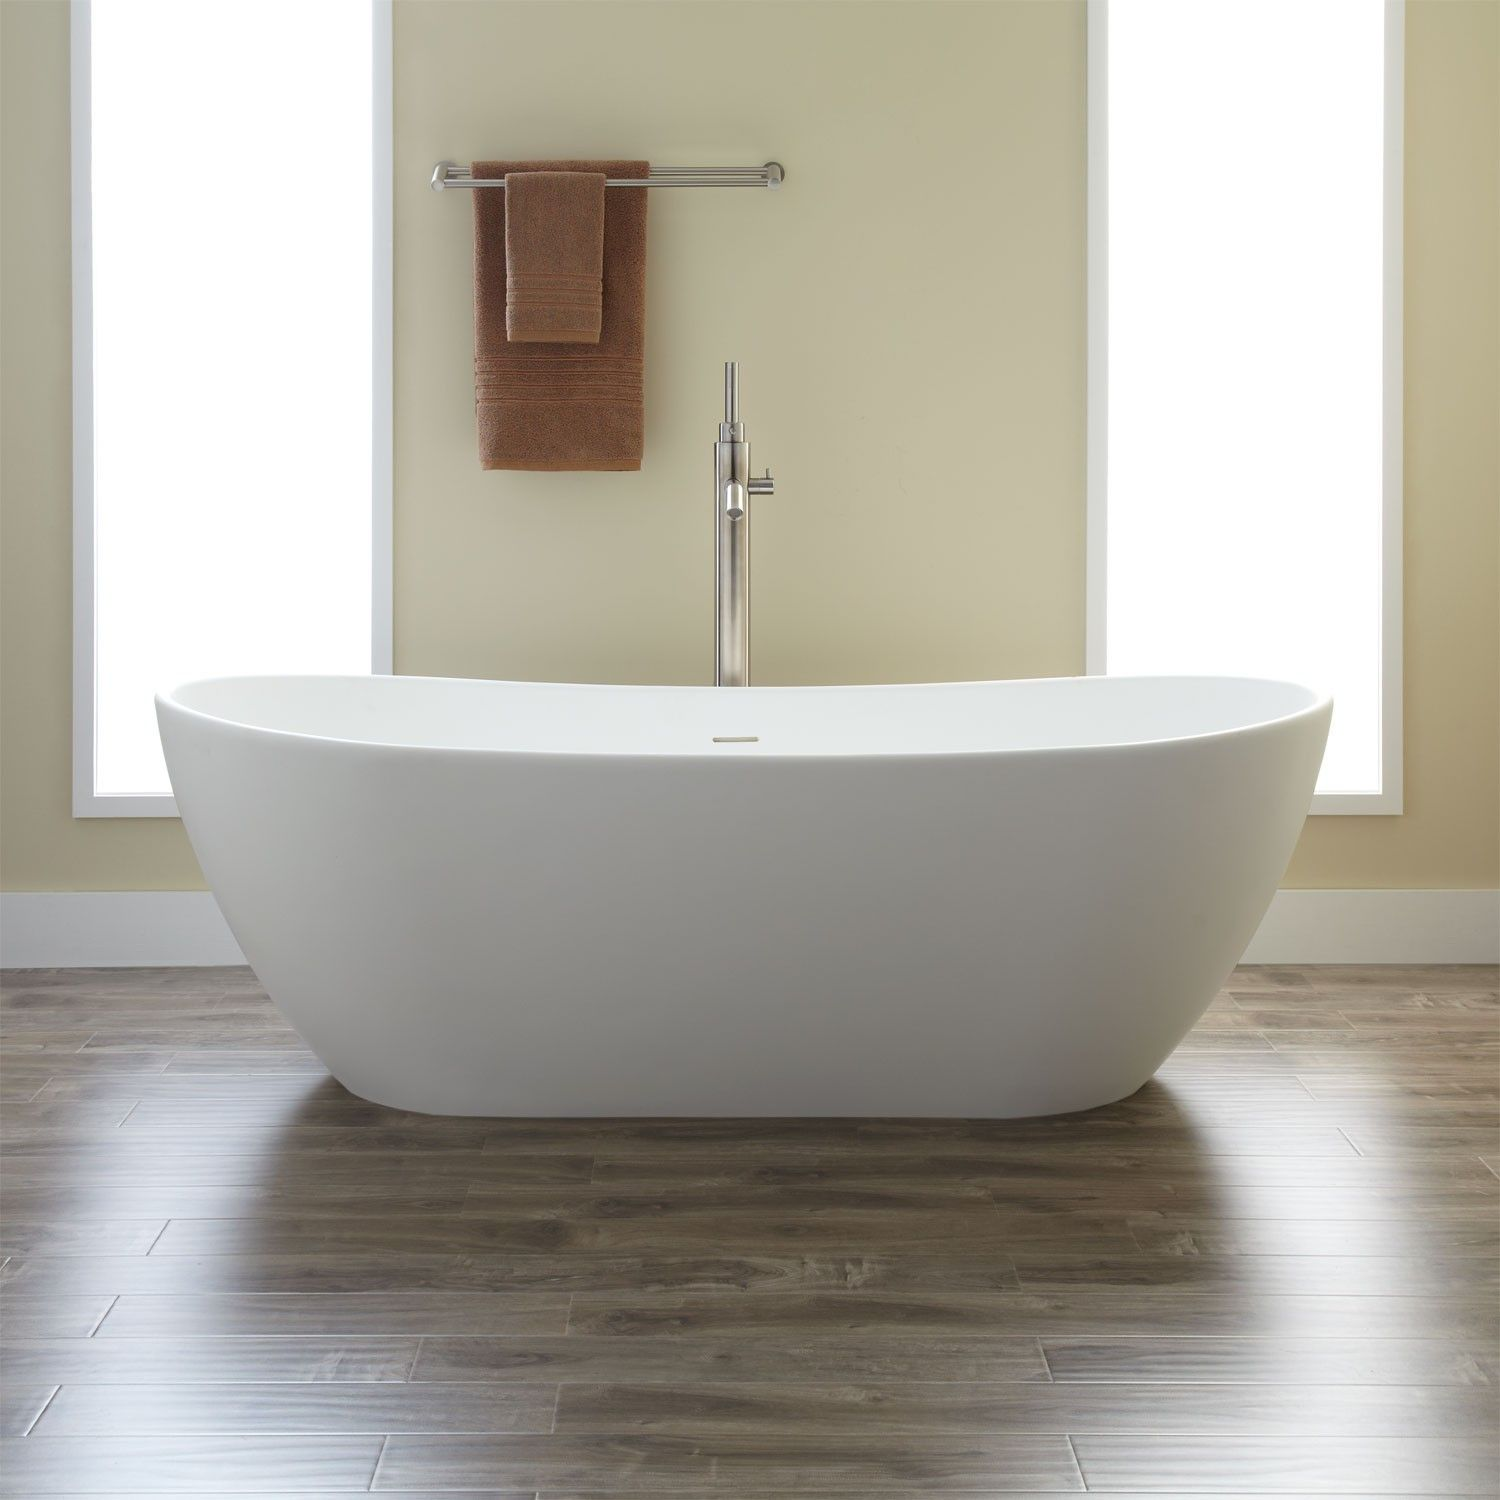 Winifred Resin Tub 71 Dimensions 71 L X 33 W Front To Back X 24 H 1 2 Water Capacity With I Free Standing Tub Free Standing Bath Tub Slipper Tubs